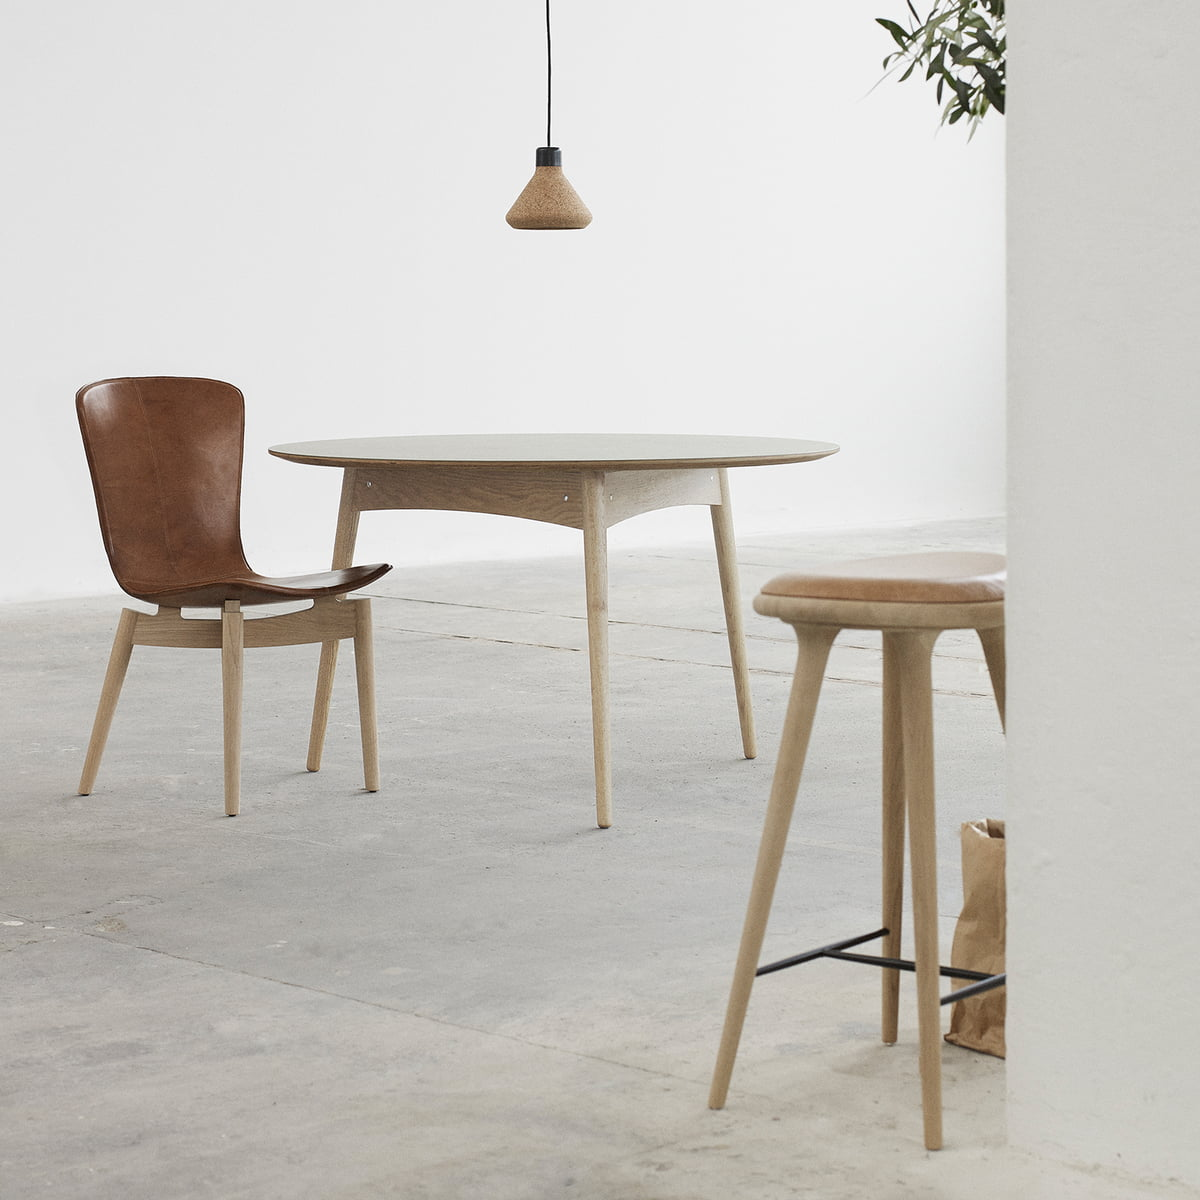 The bar stool by mater made from soaped oak with the luiz pendant lamp made of